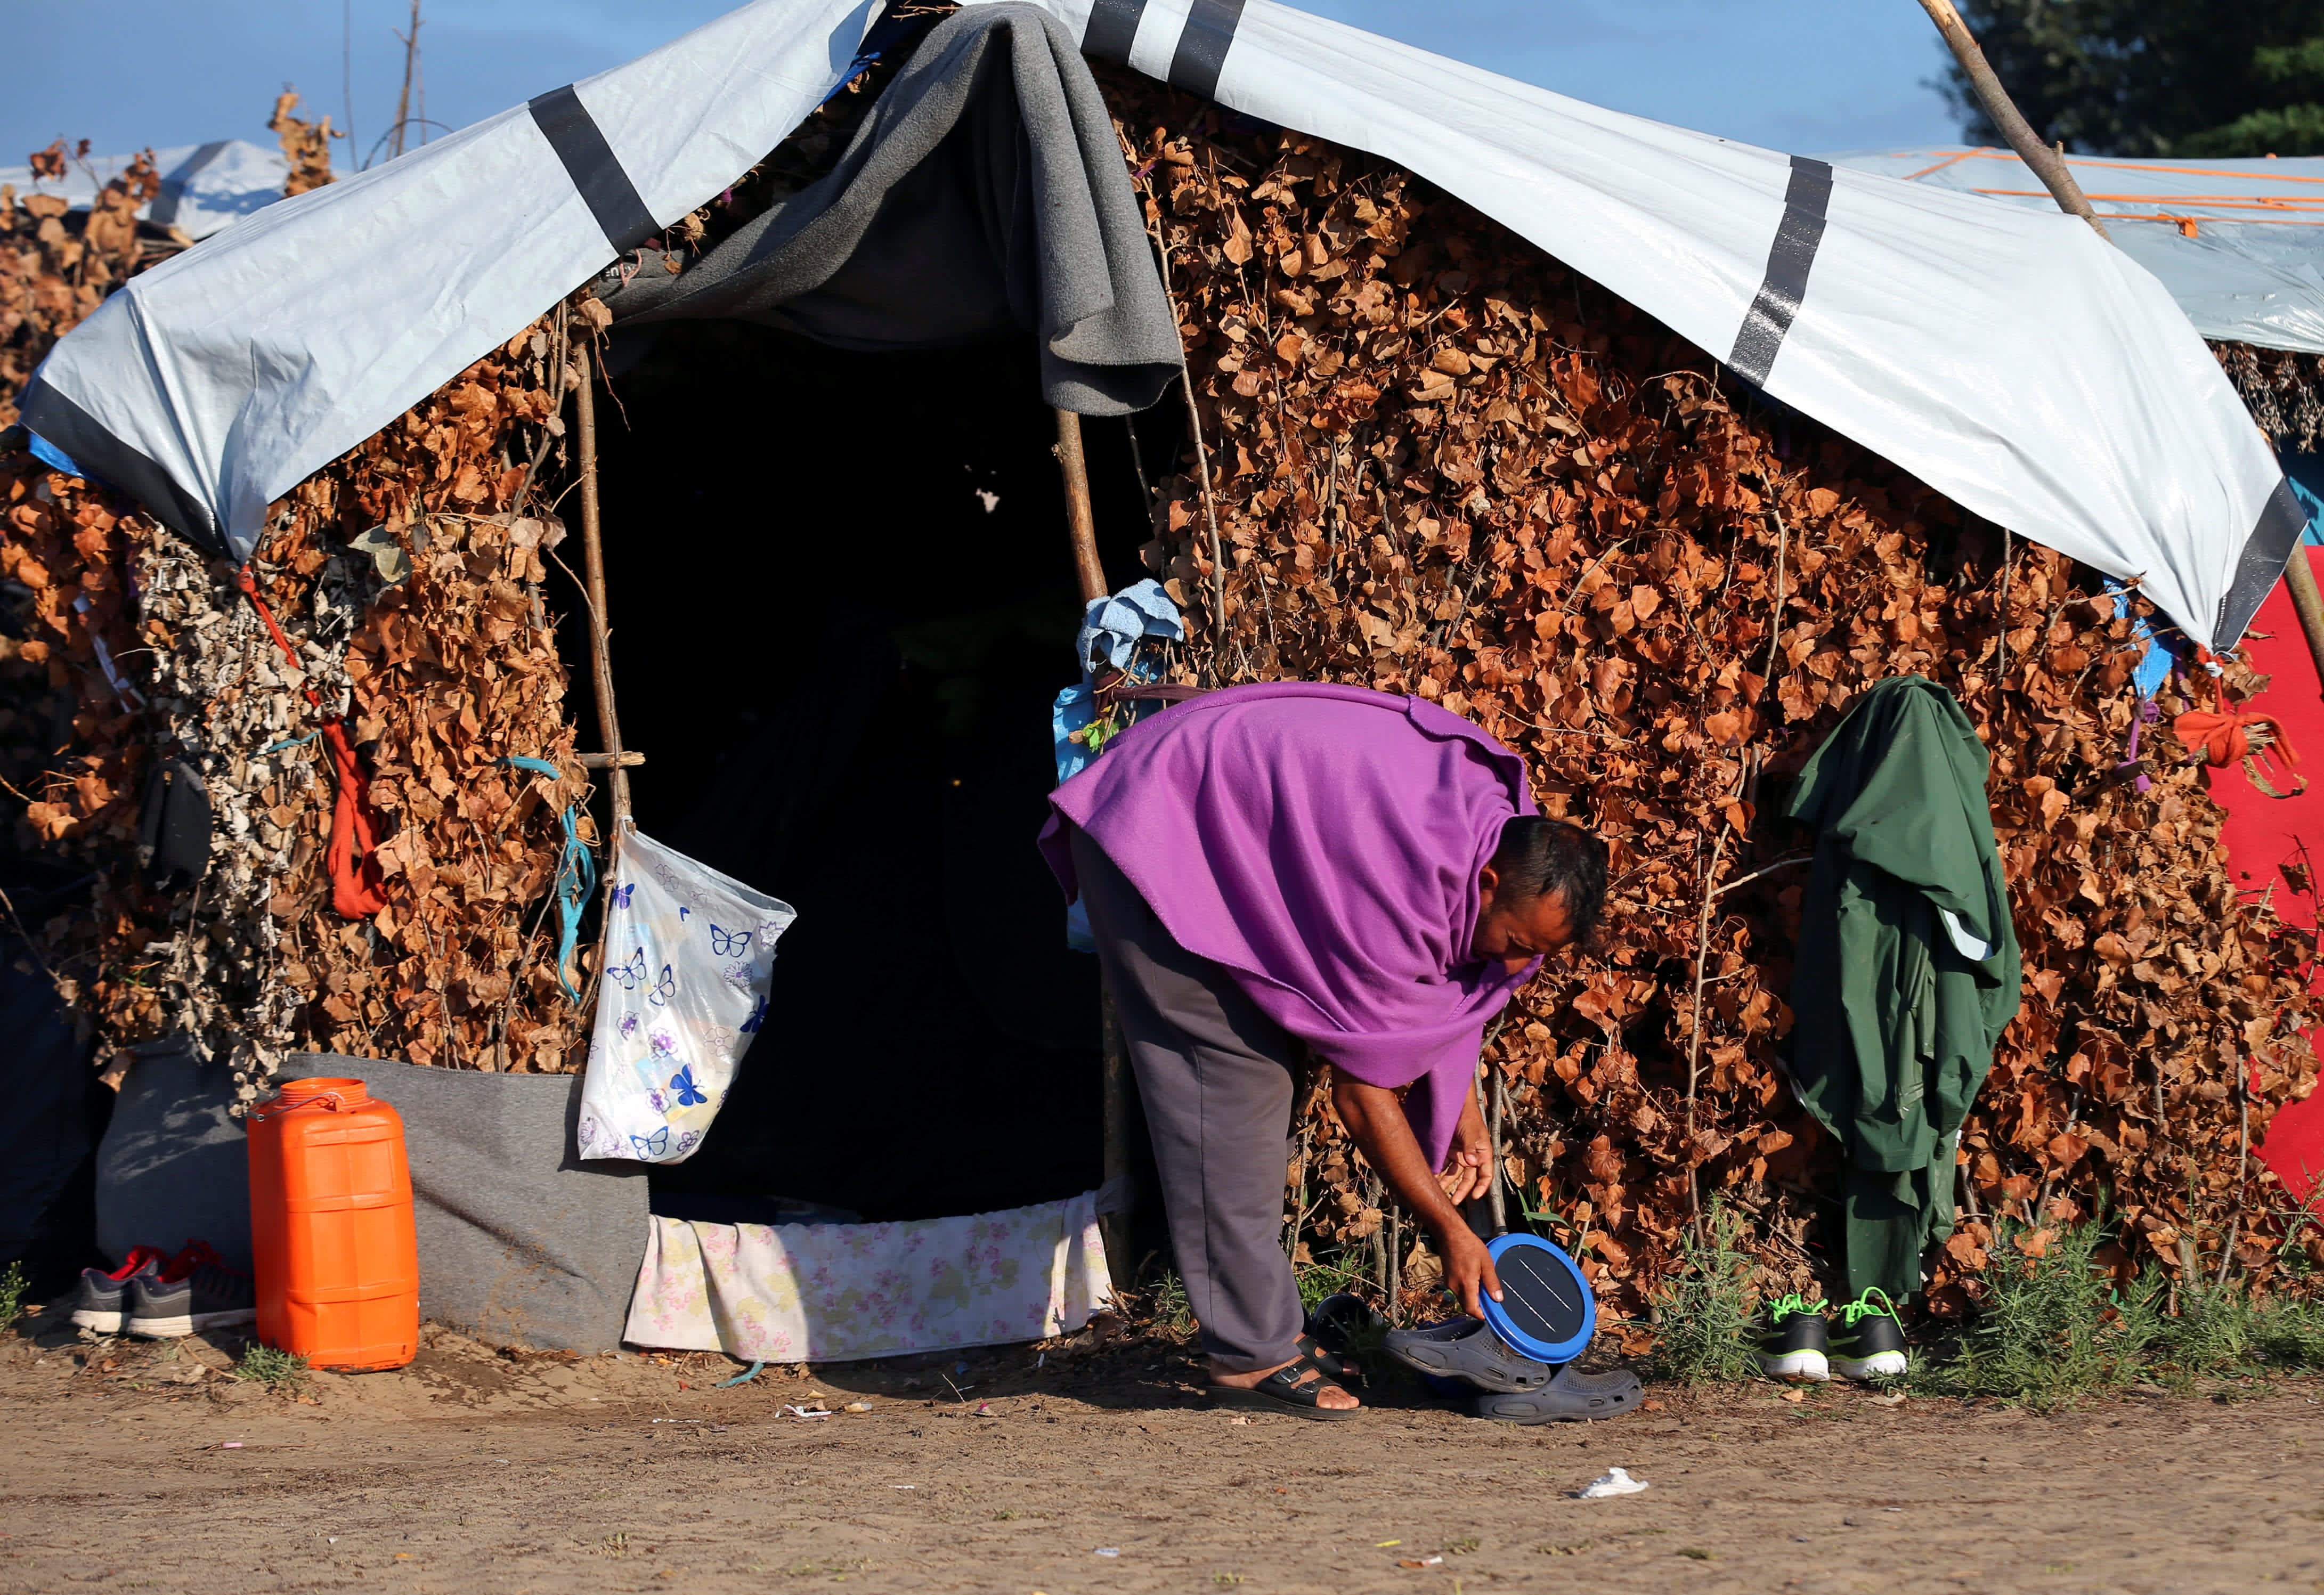 A refugee cleans his tent in a makeshift camp on the Hungary-Serbia border, on the Serbian side of a transit zone set up by Hungarian authorities to filter refugees at Roszke, Hungary, September 2, 2016 (REUTERS/LASZLO BALOGH)